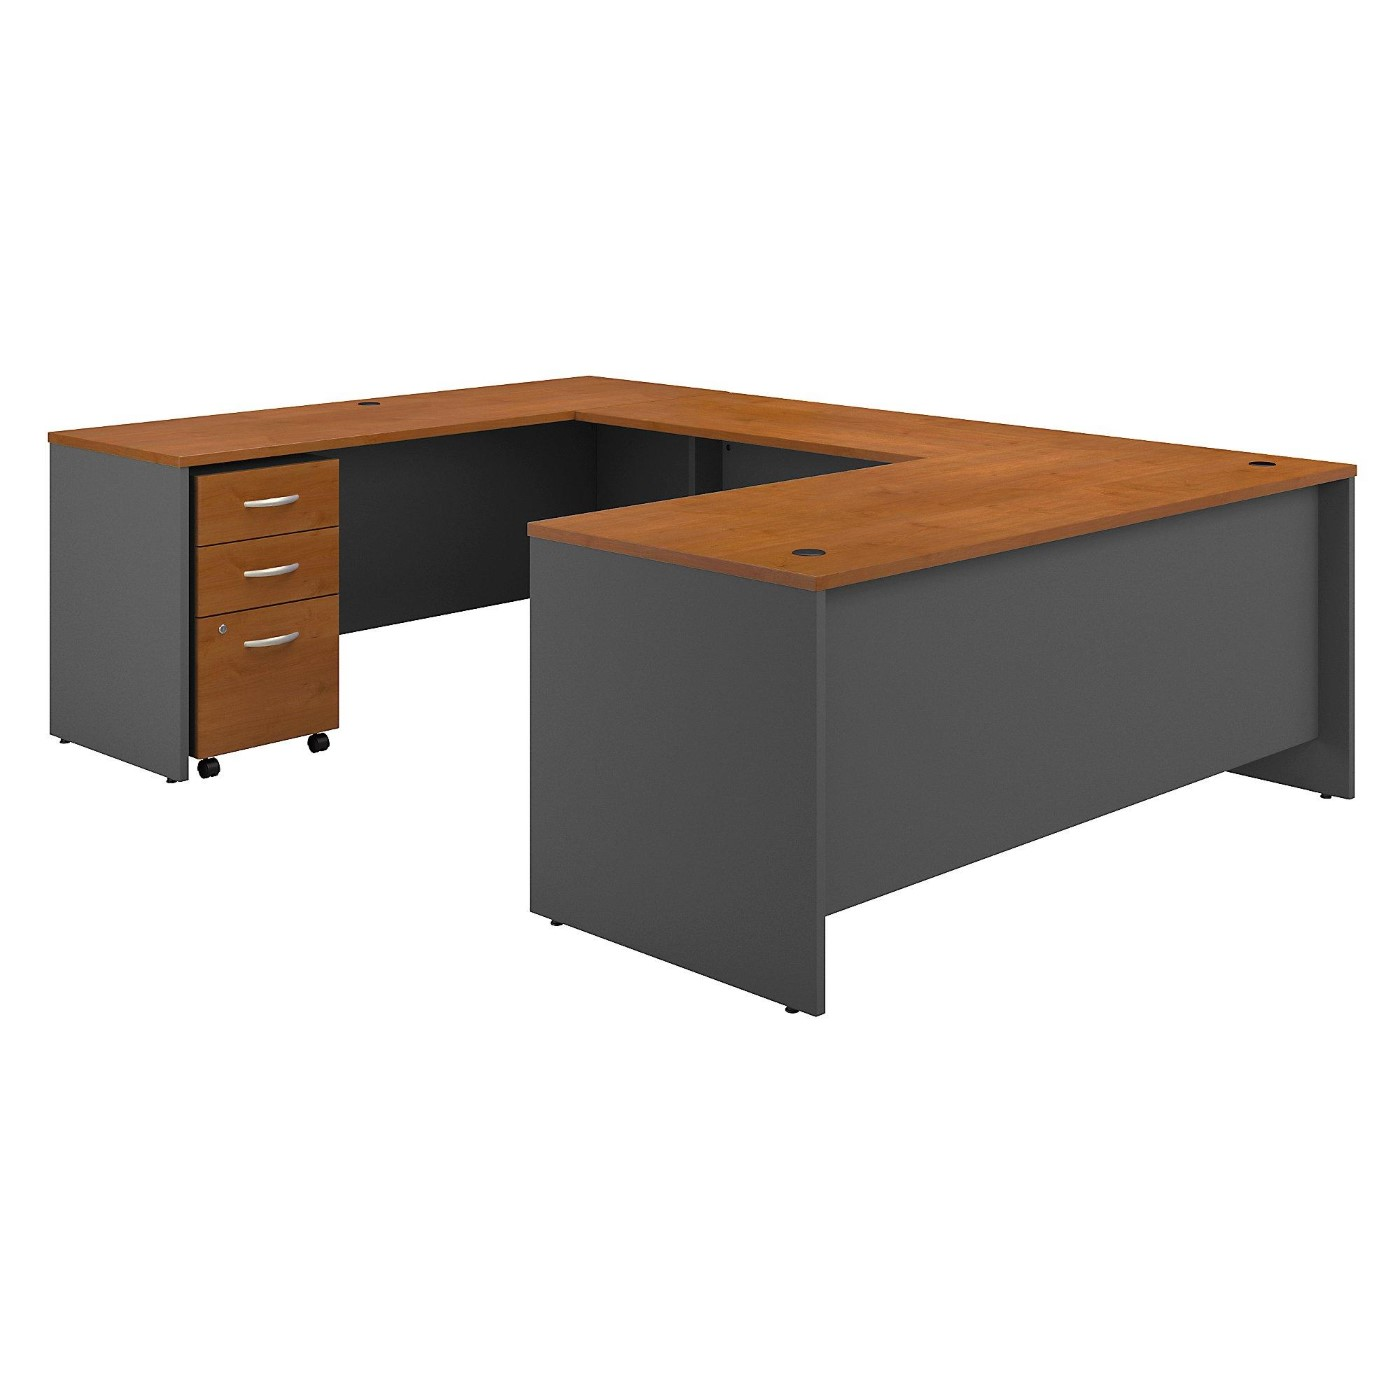 BUSH BUSINESS FURNITURE SERIES C 72W X 30D U SHAPED DESK WITH MOBILE FILE CABINET. FREE SHIPPING</font></b></font></b>&#x1F384<font color=red><b>ERGONOMICHOME HOLIDAY SALE - ENDS DEC. 17, 2019</b></font>&#x1F384